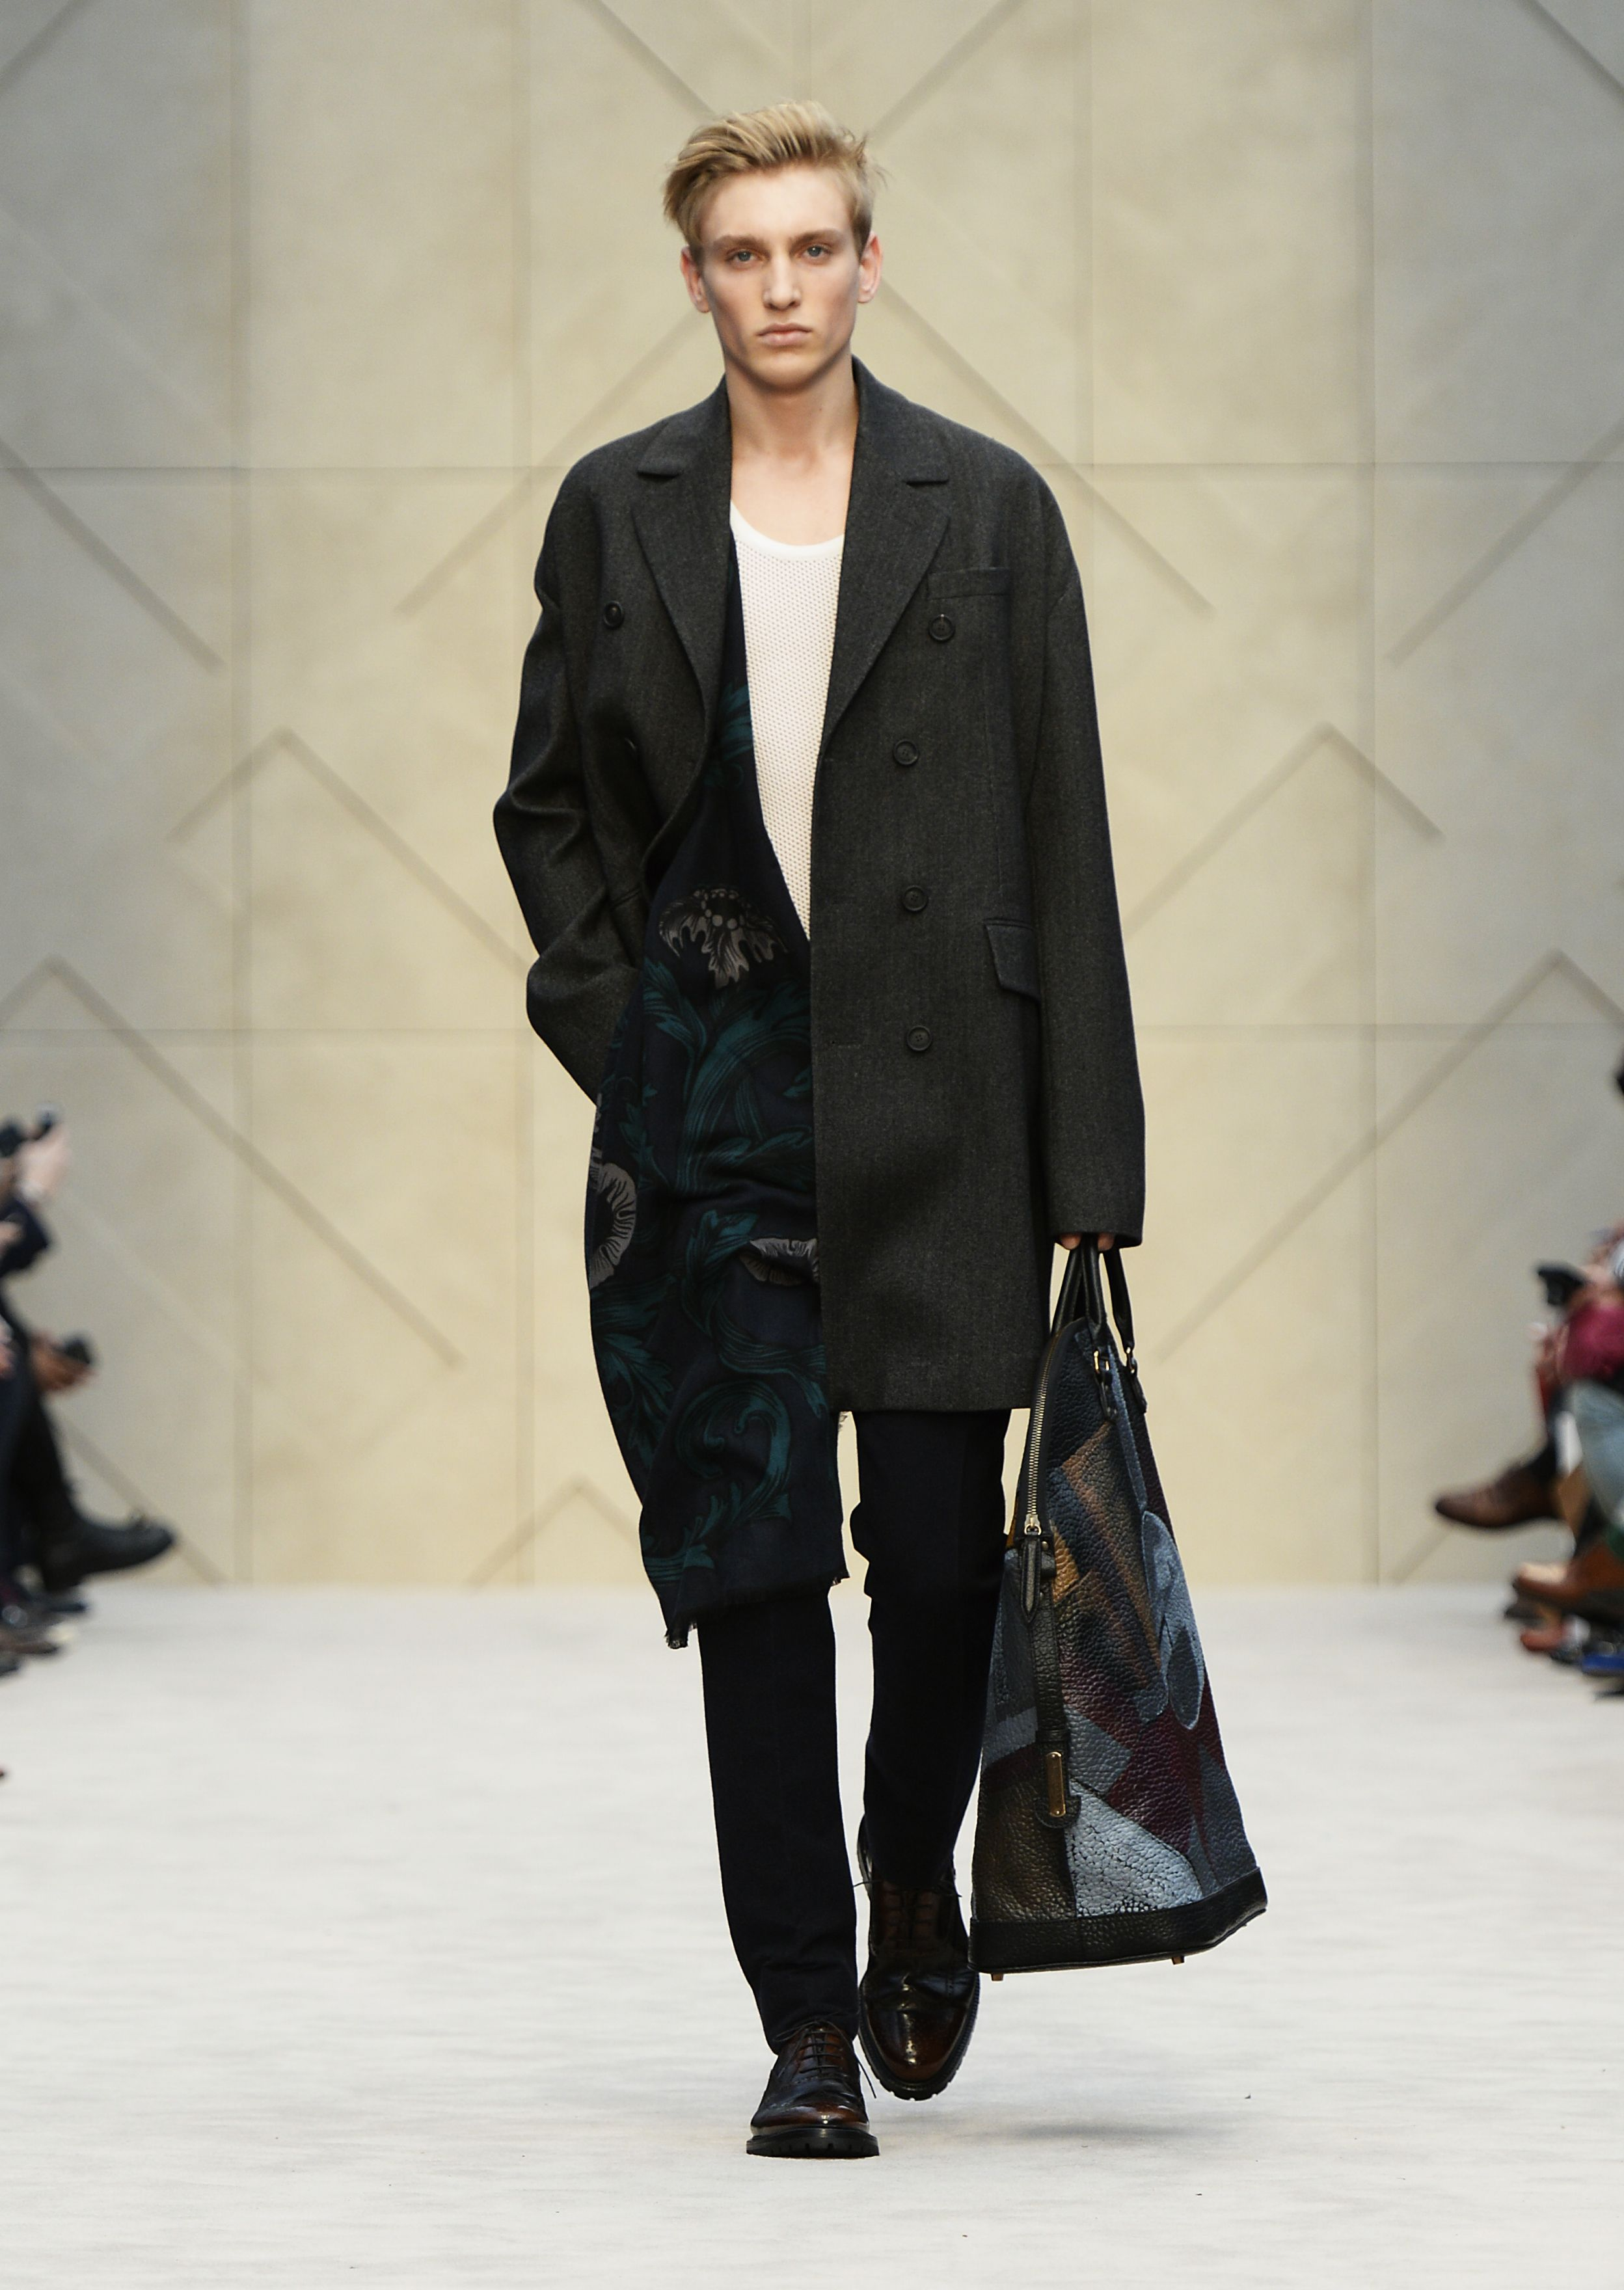 Micro Tweed Chesterfield coat and vine print cashmere scarf with The St Ives bag in hand-painted leather